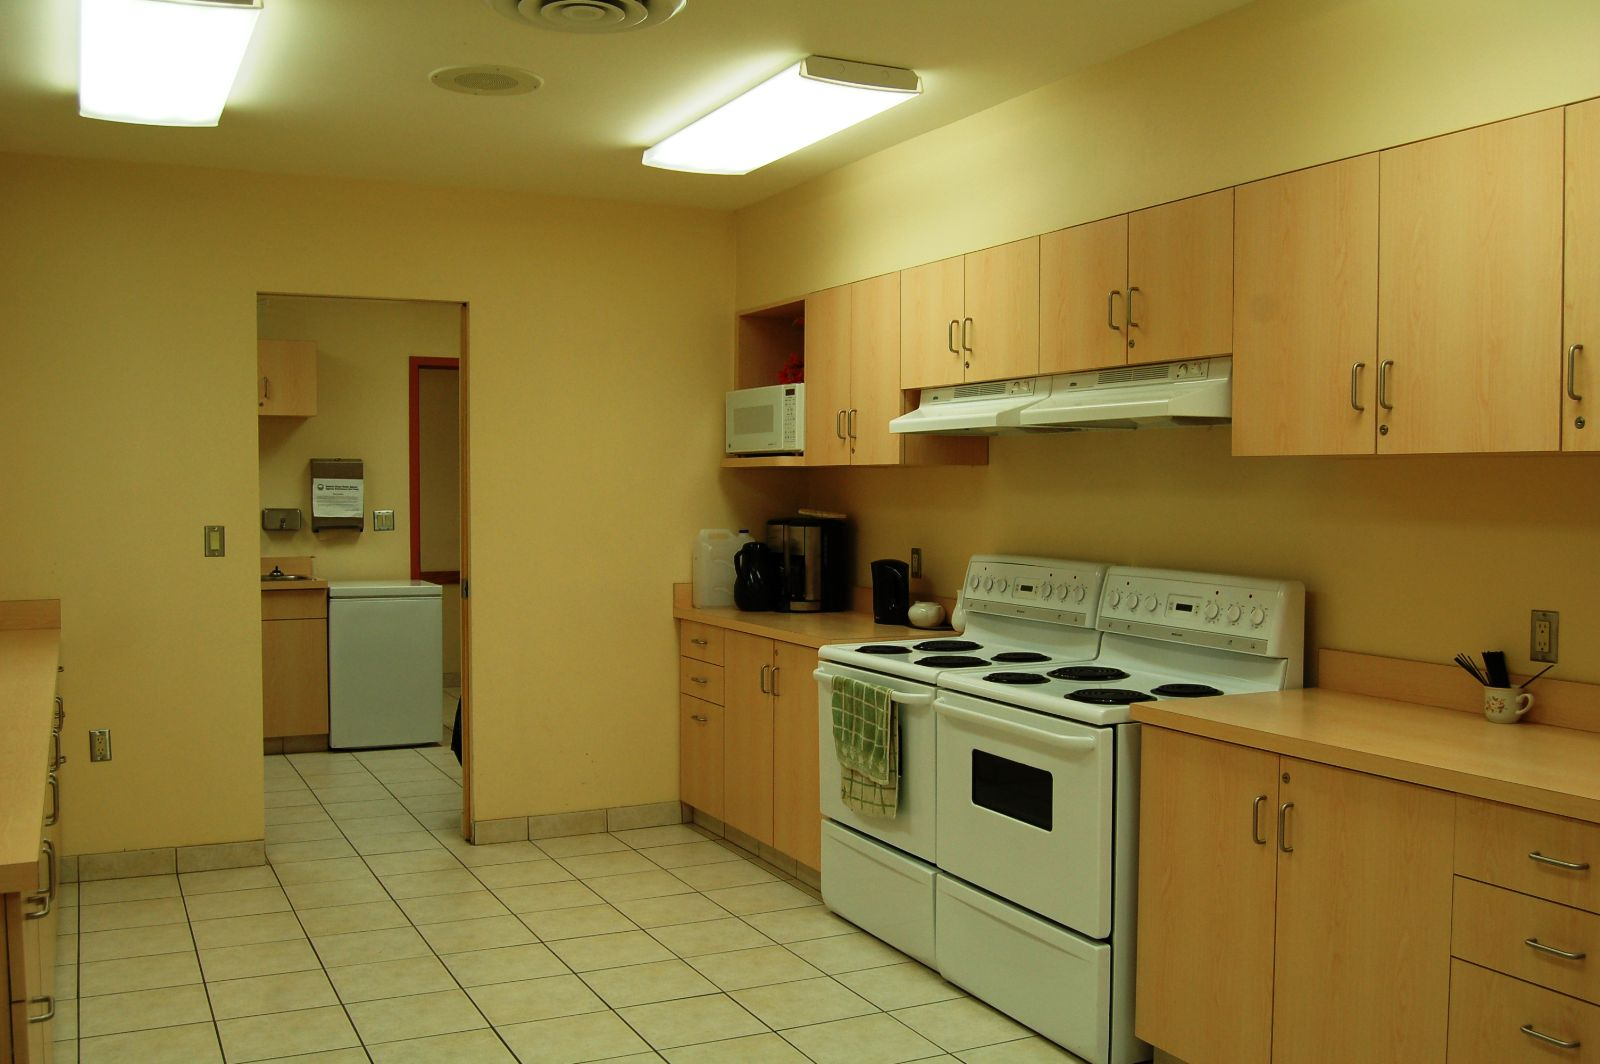 Photo of the kitchen at Marden Community Centre